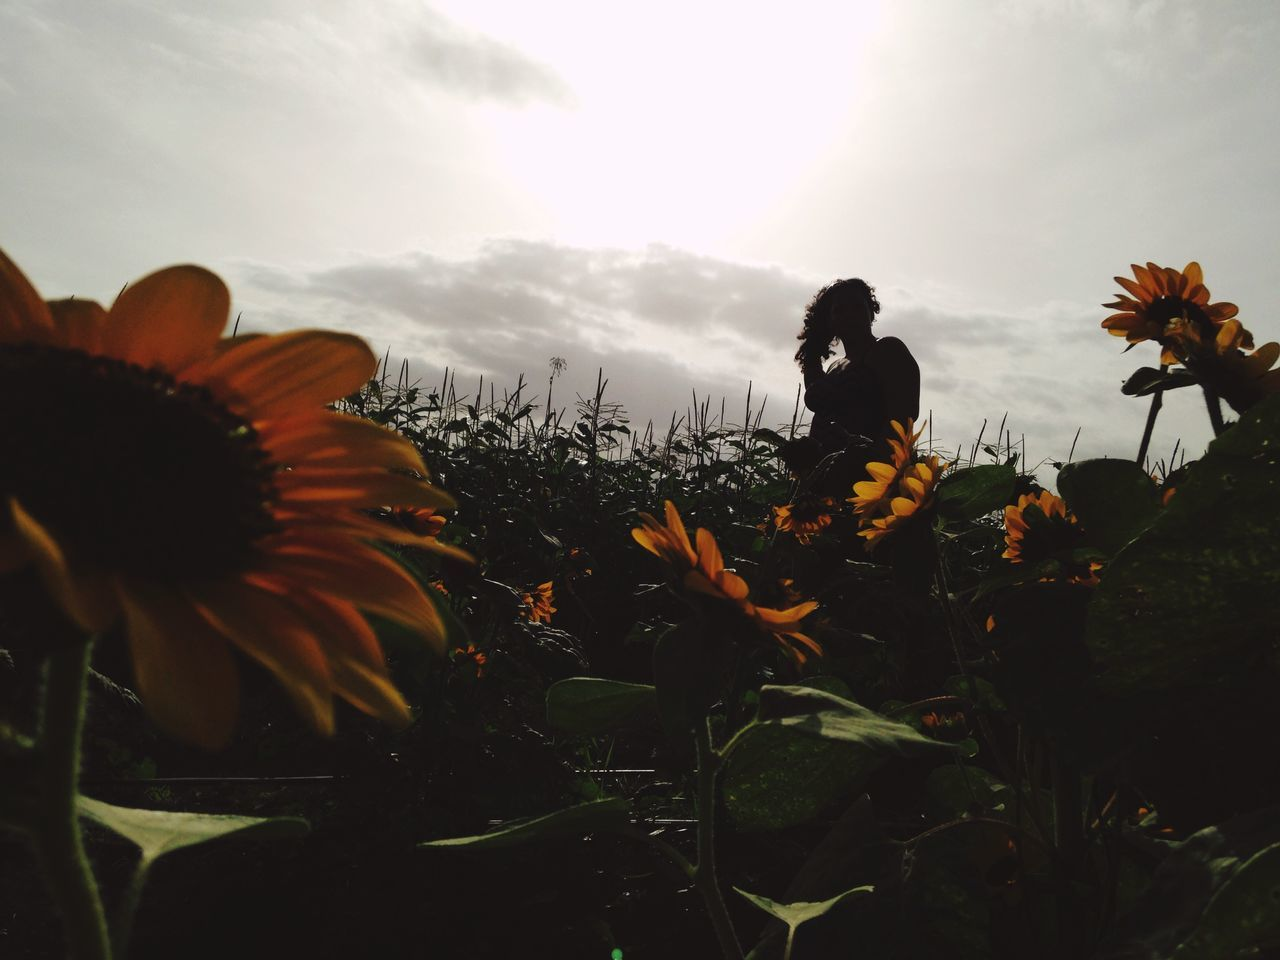 Sunflower EyeEm Nature Lover Nature Silhouette Flowers IPhoneography Outdoors Field